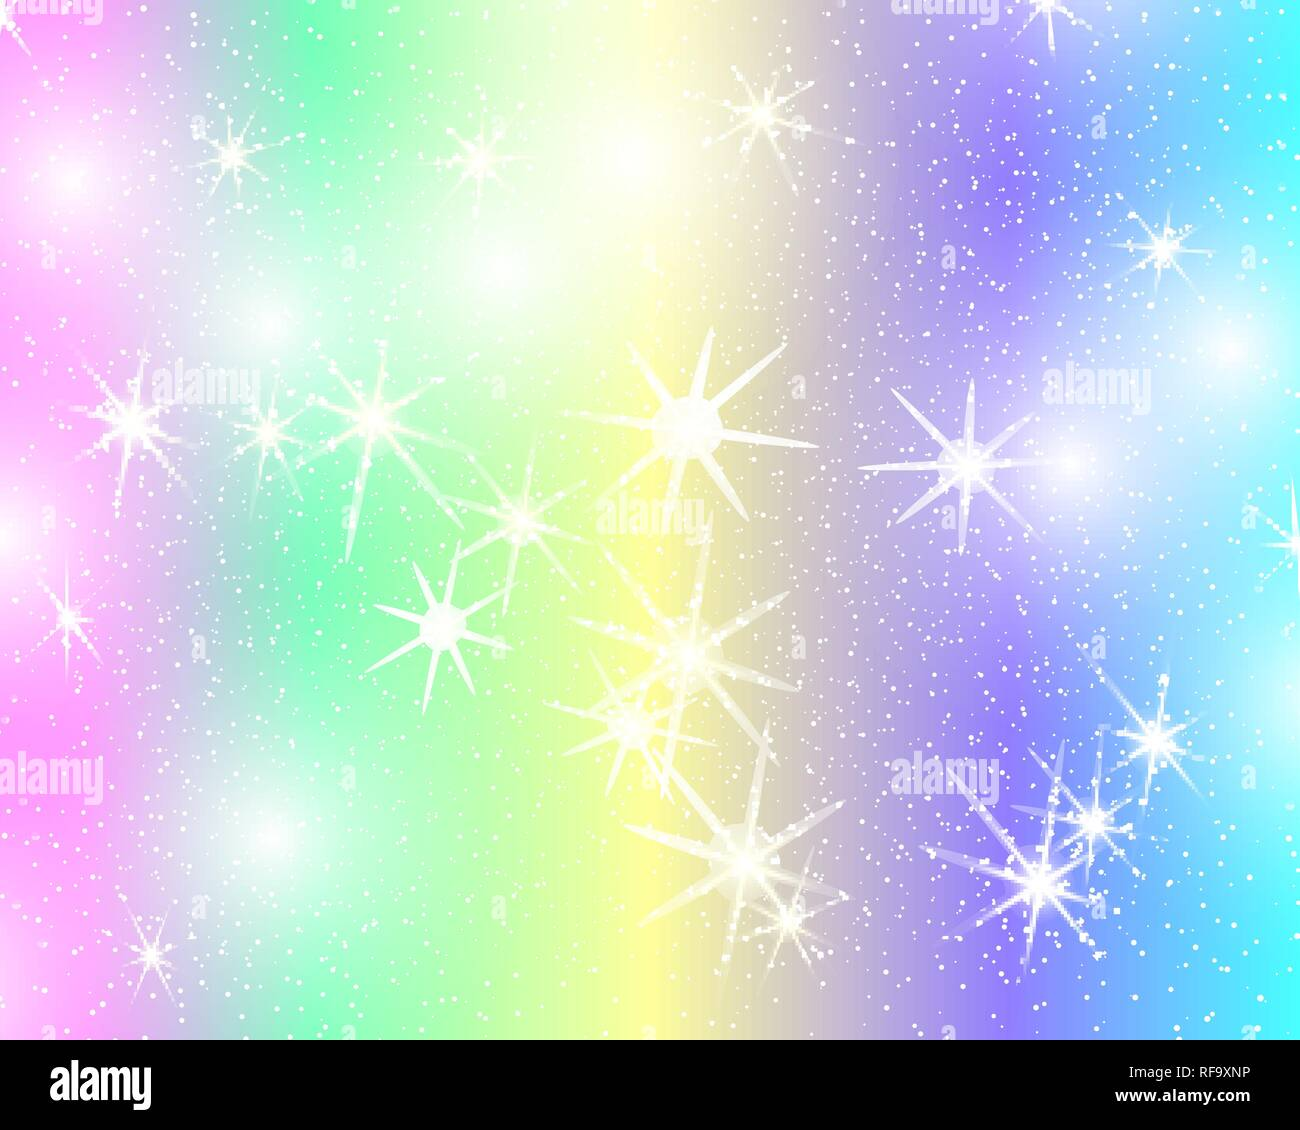 unicorn rainbow background holographic sky in pastel color bright mermaid pattern in princess colors vector illustration fantasy gradient colorful RF9XNP